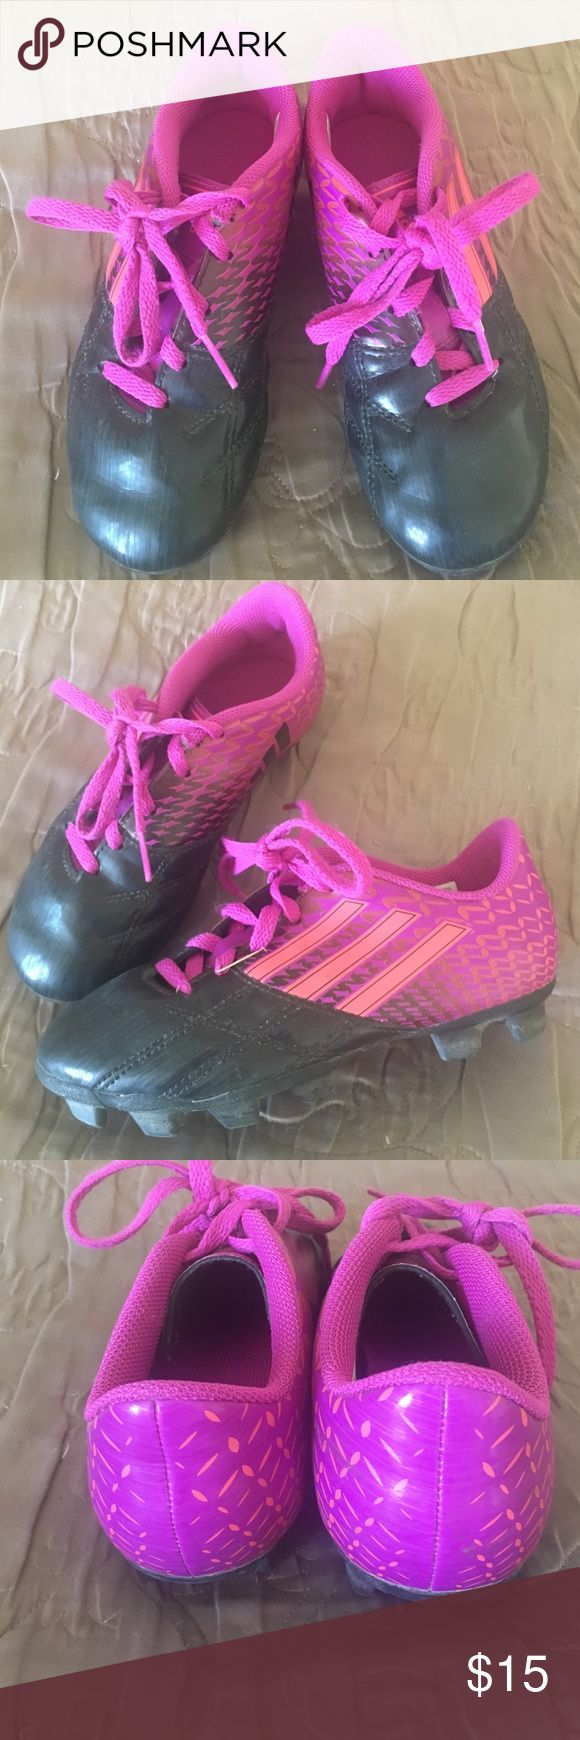 Adidas girls soccer cleats Pink and black. Used but in great condition. Need a little wipe down but great! Why spend full price on something they'll use for so little time. These are super cute Adidas Shoes Sneakers